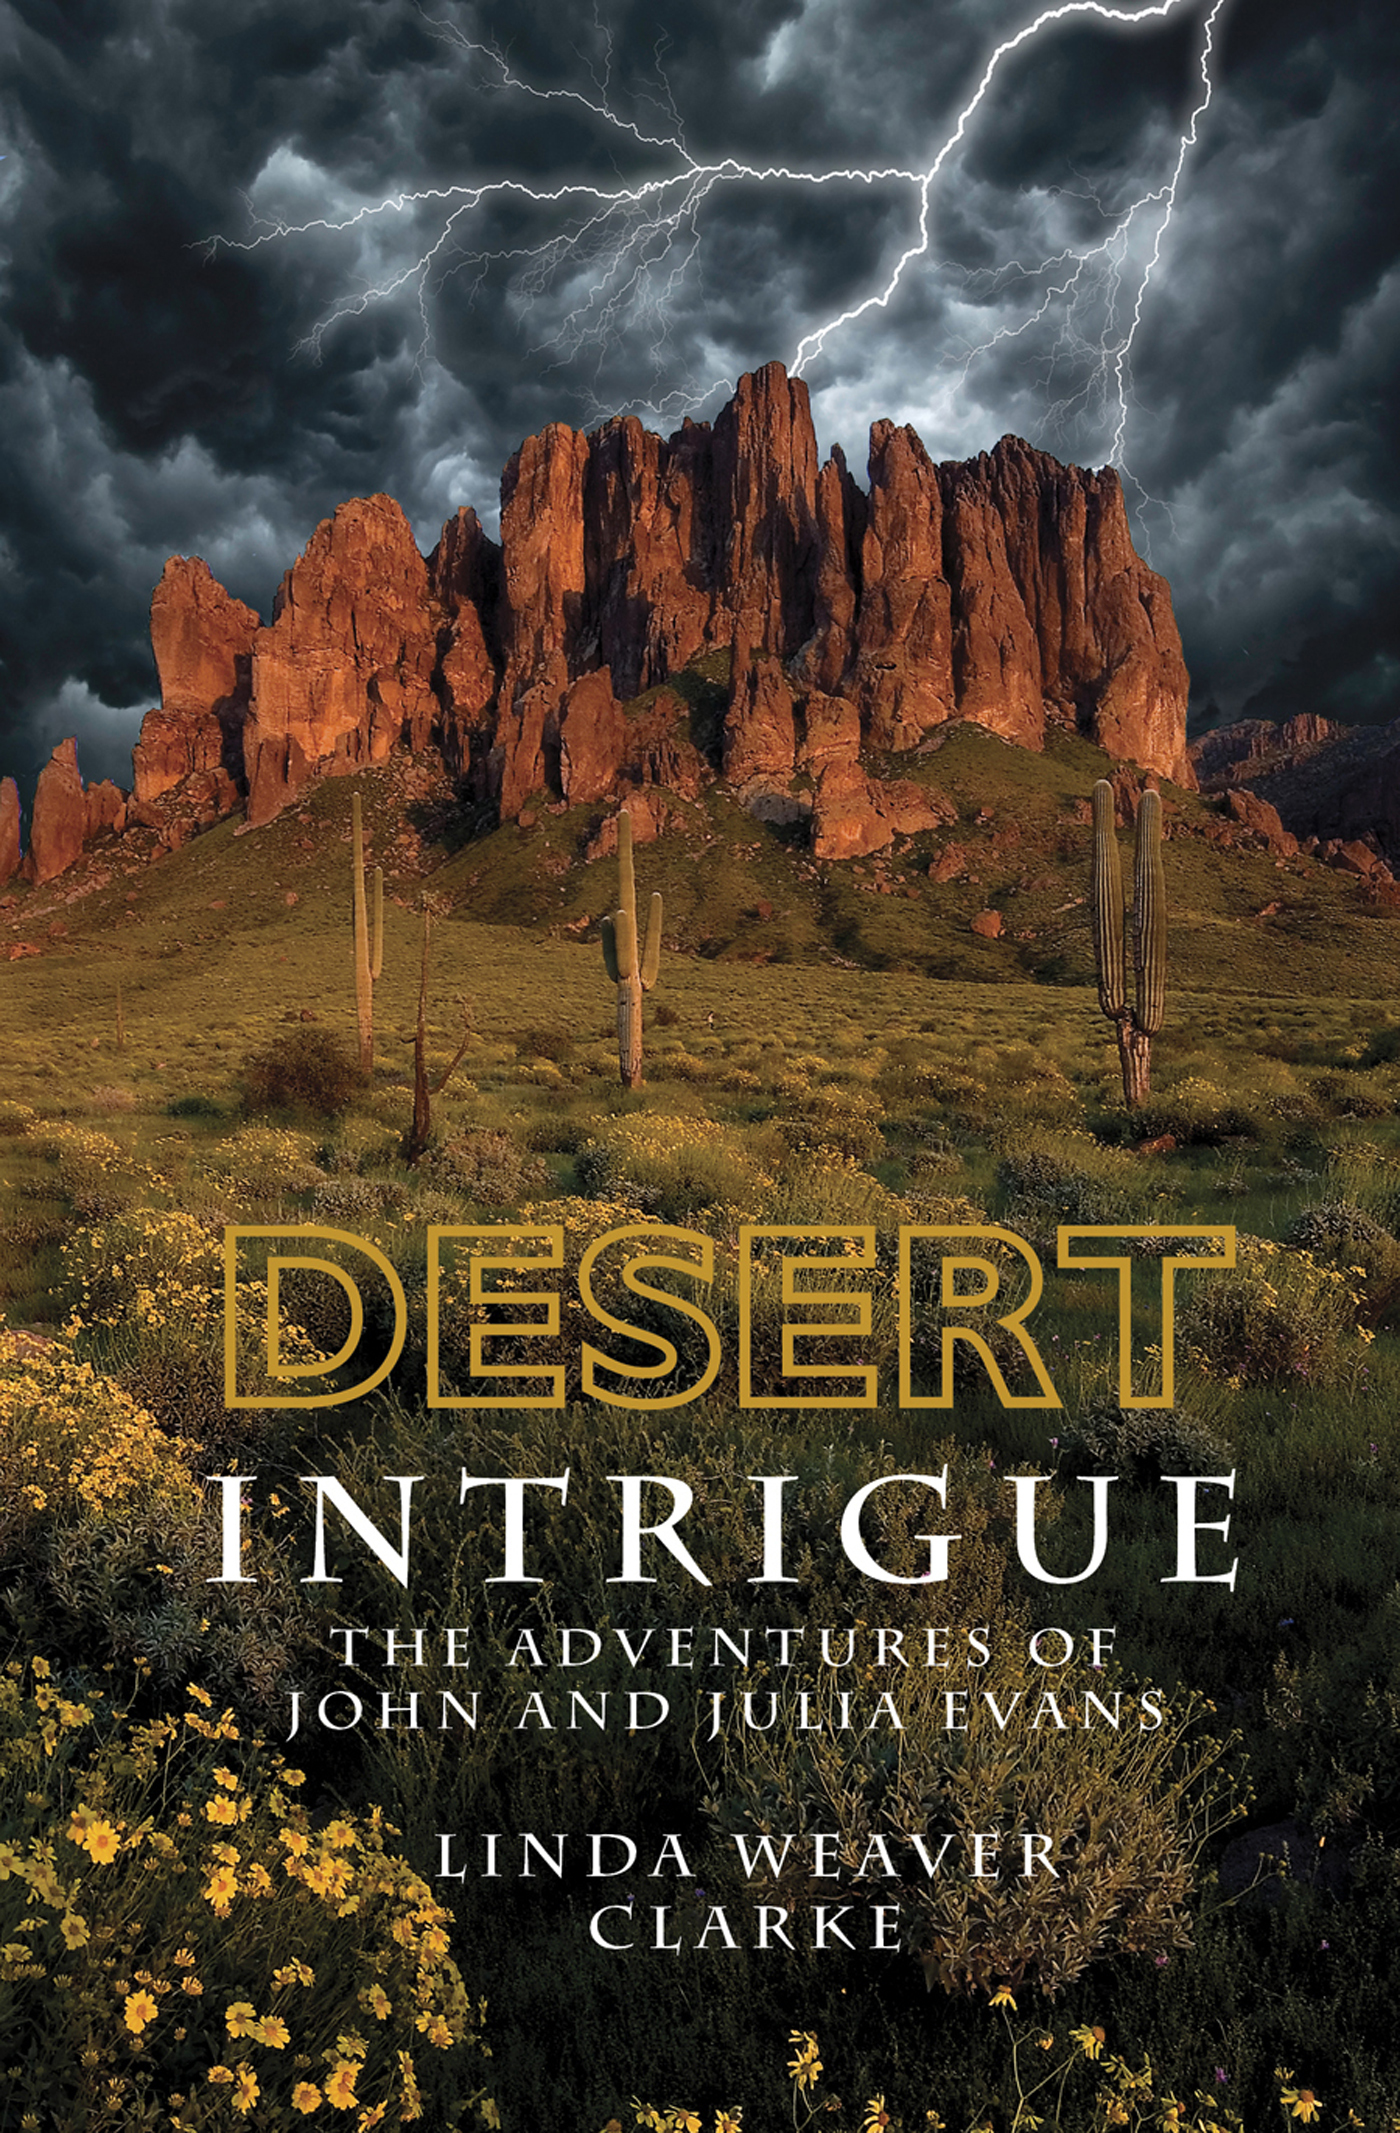 Desert Intrigue: The Adventures of John and Julia Evans